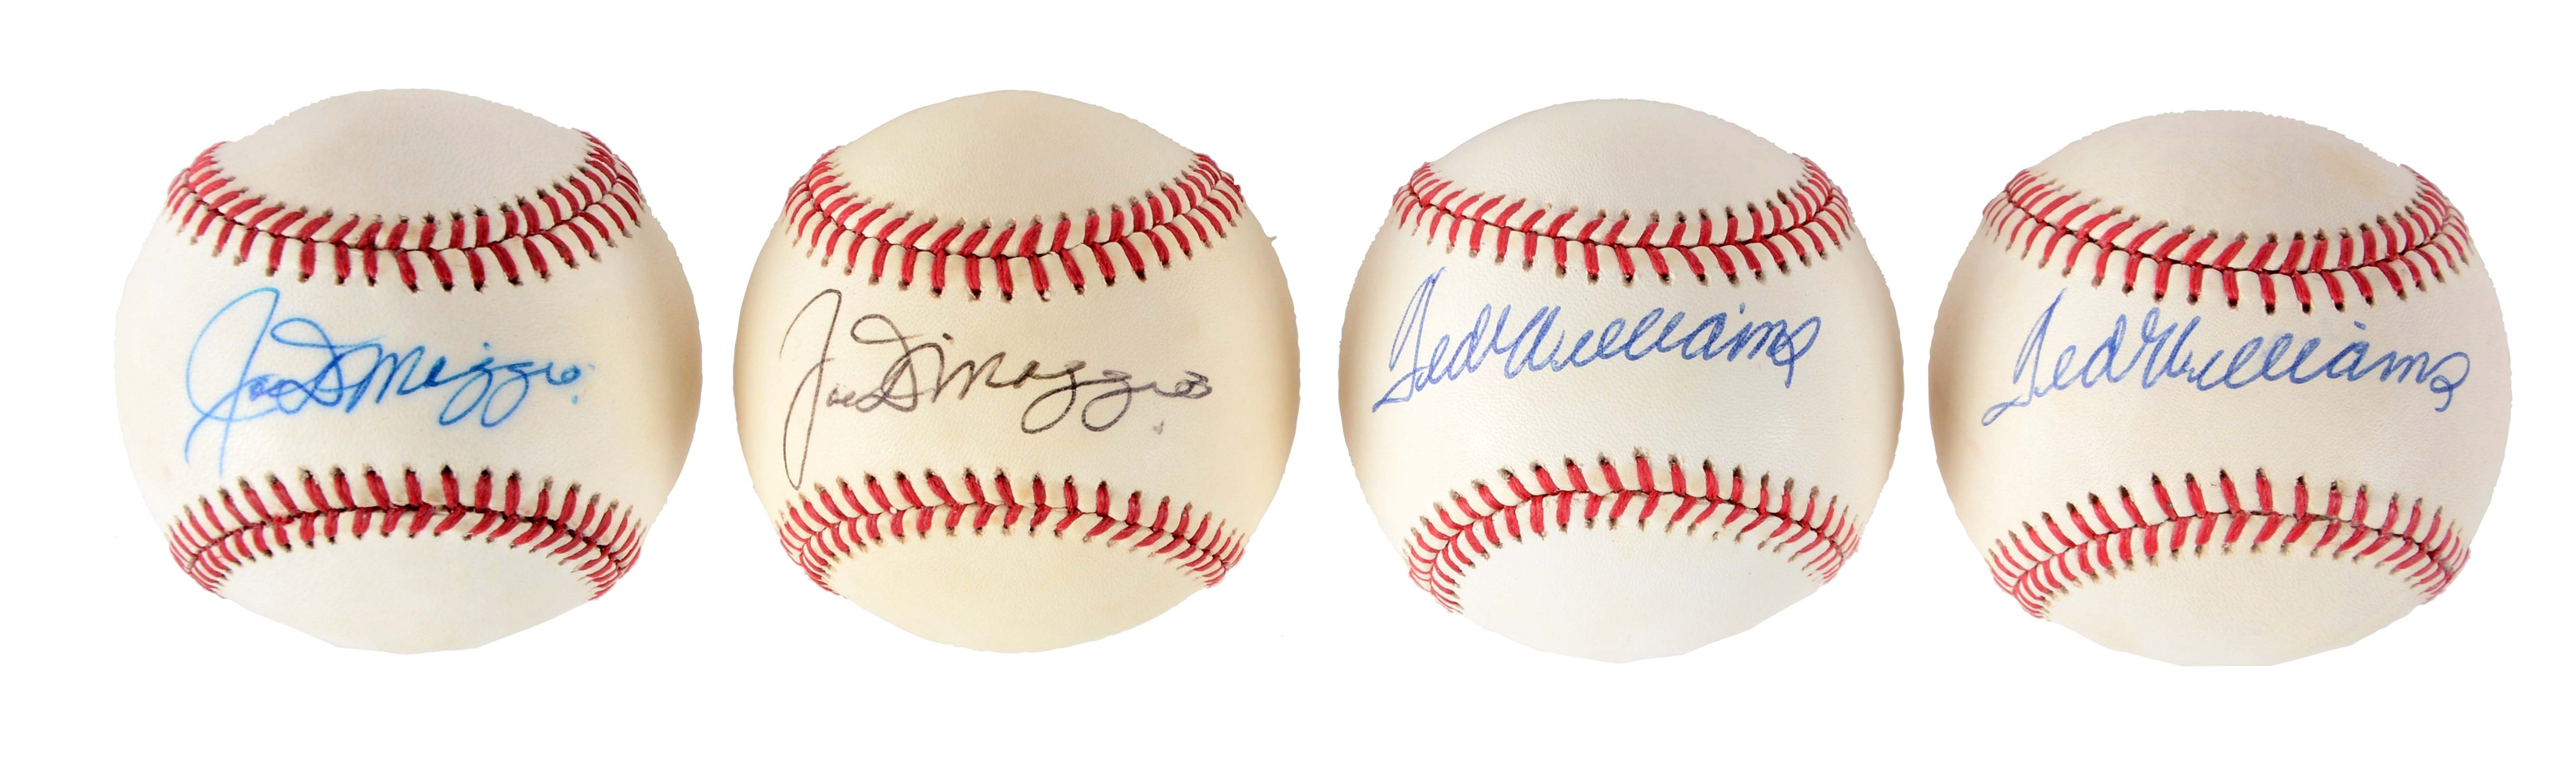 Lot of 4: Ted Williams and Joe DiMaggio Signed Baseballs.